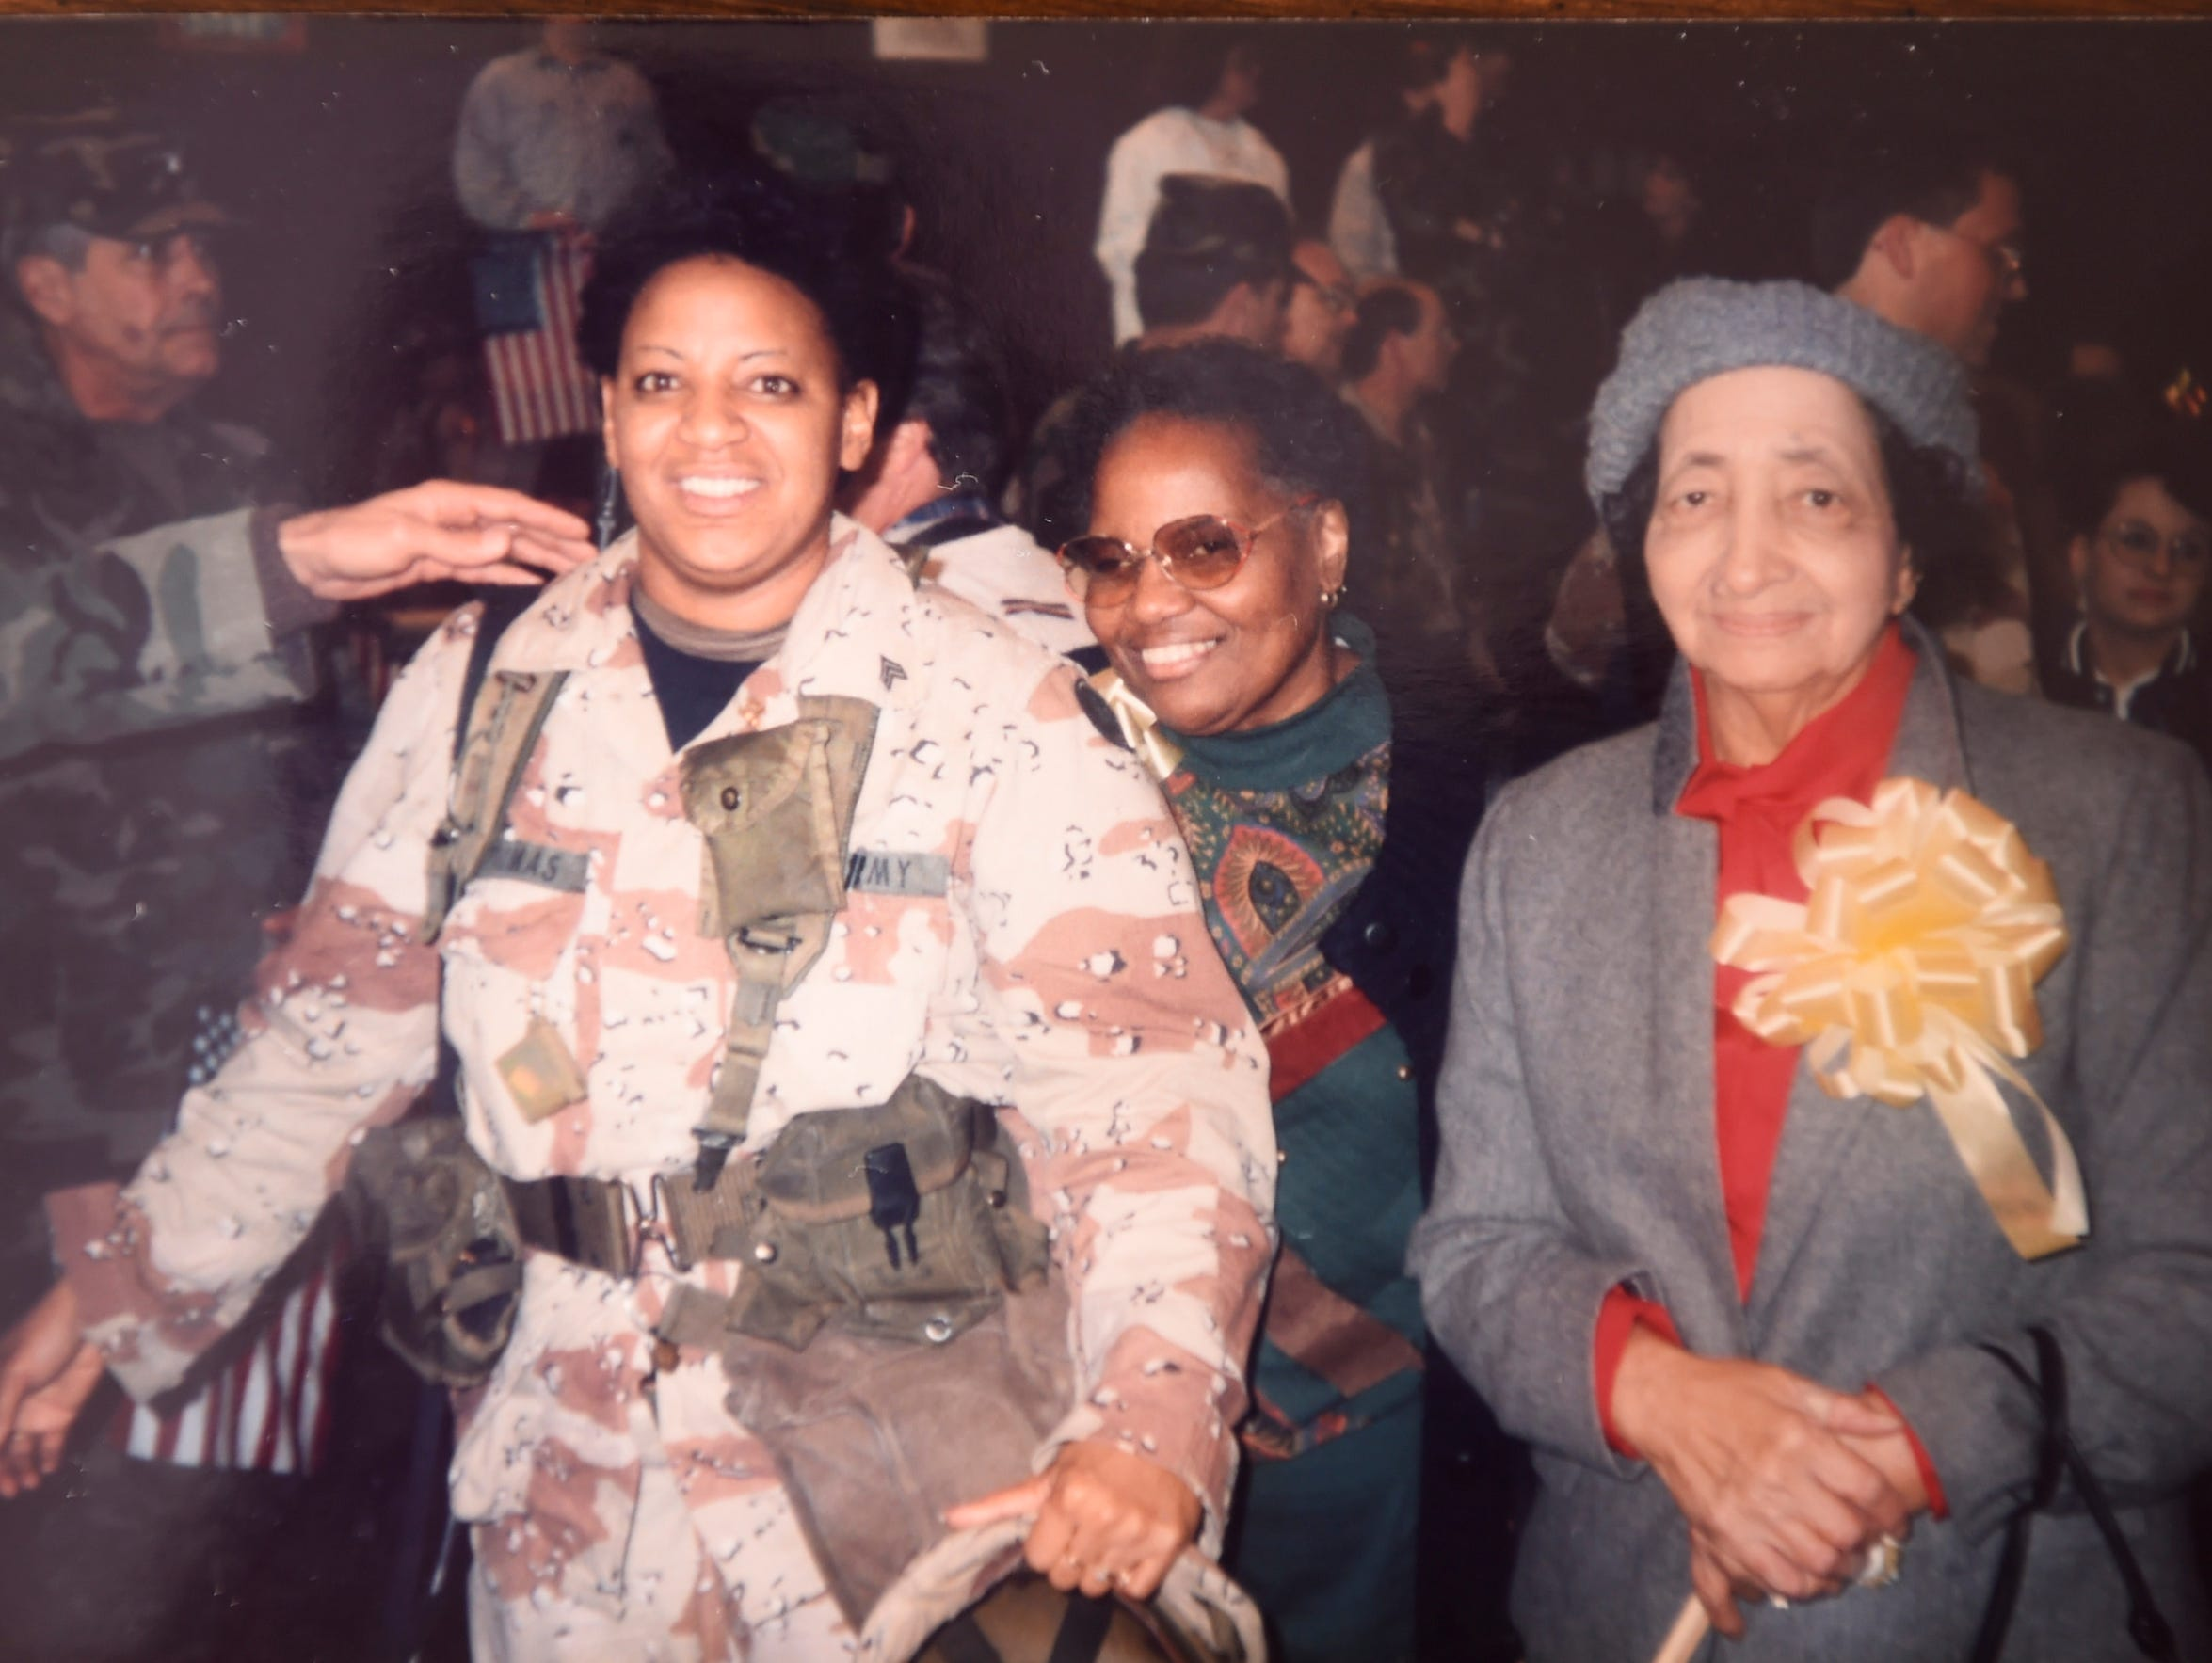 Phyllis Thomas, photographed with her family, served